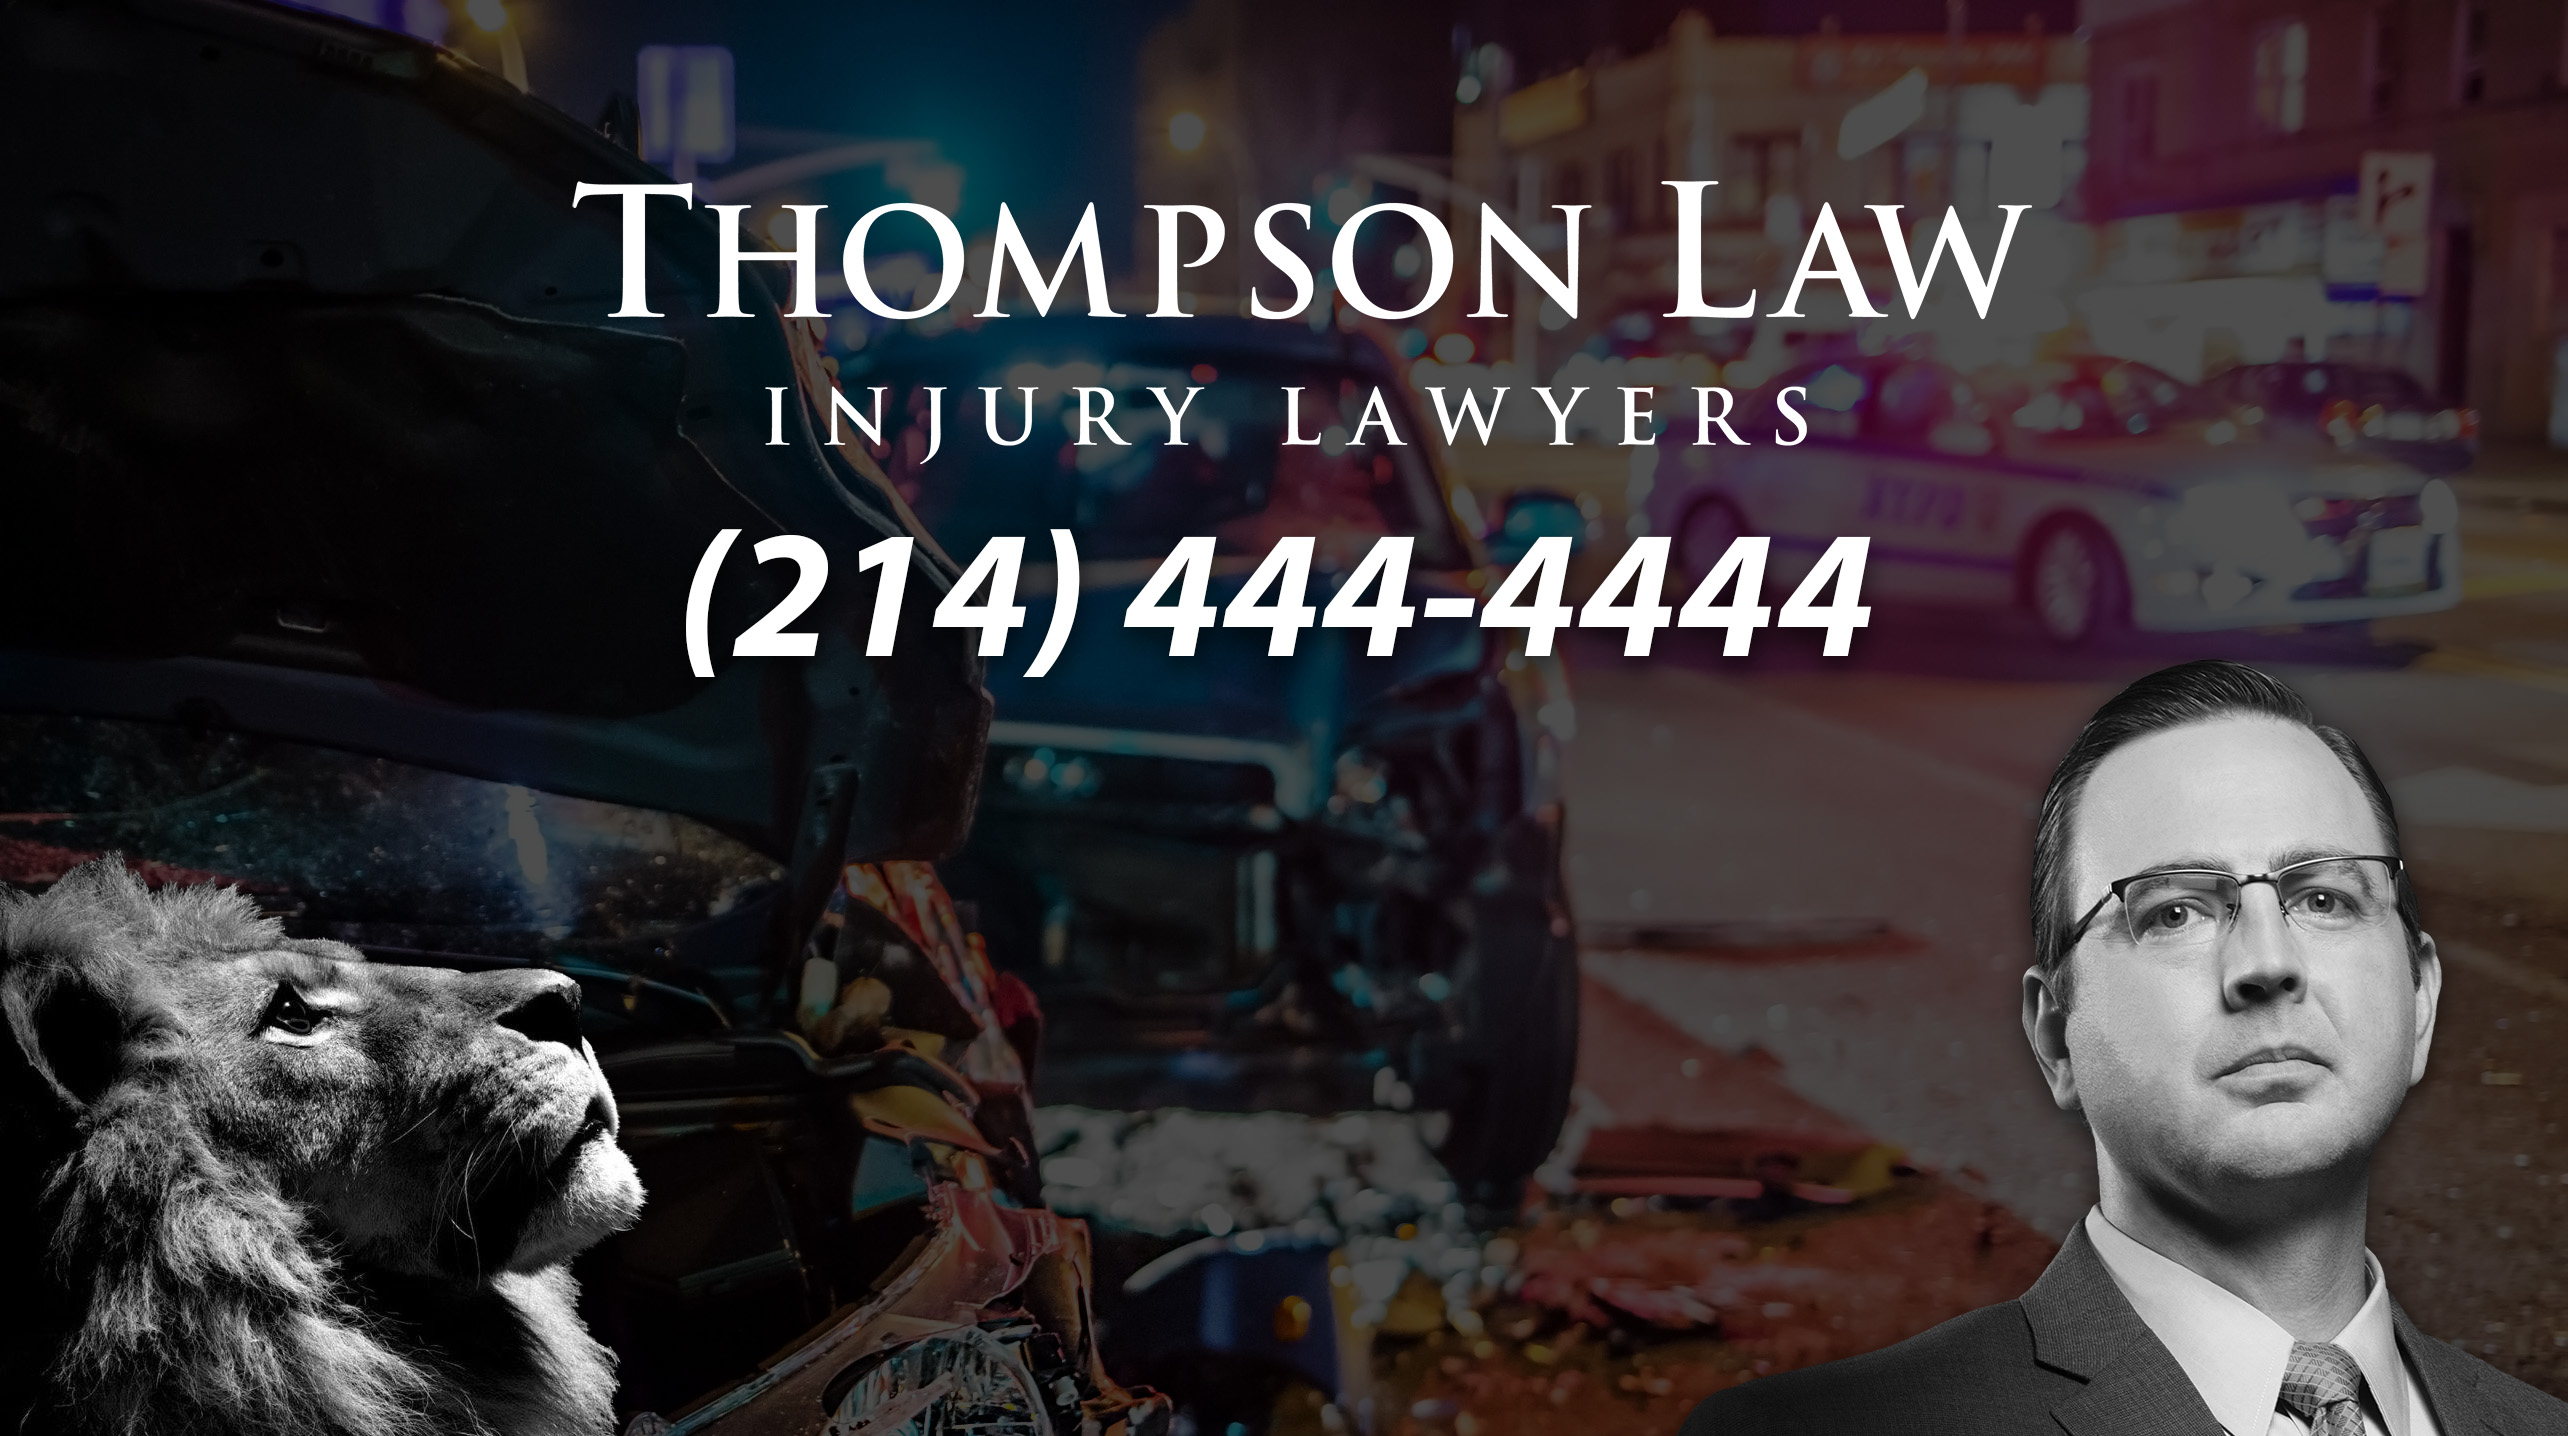 Thompson Law Injury Lawyers reviews   Personal Injury Law at 3300 Oak Lawn Ave. - Dallas TX